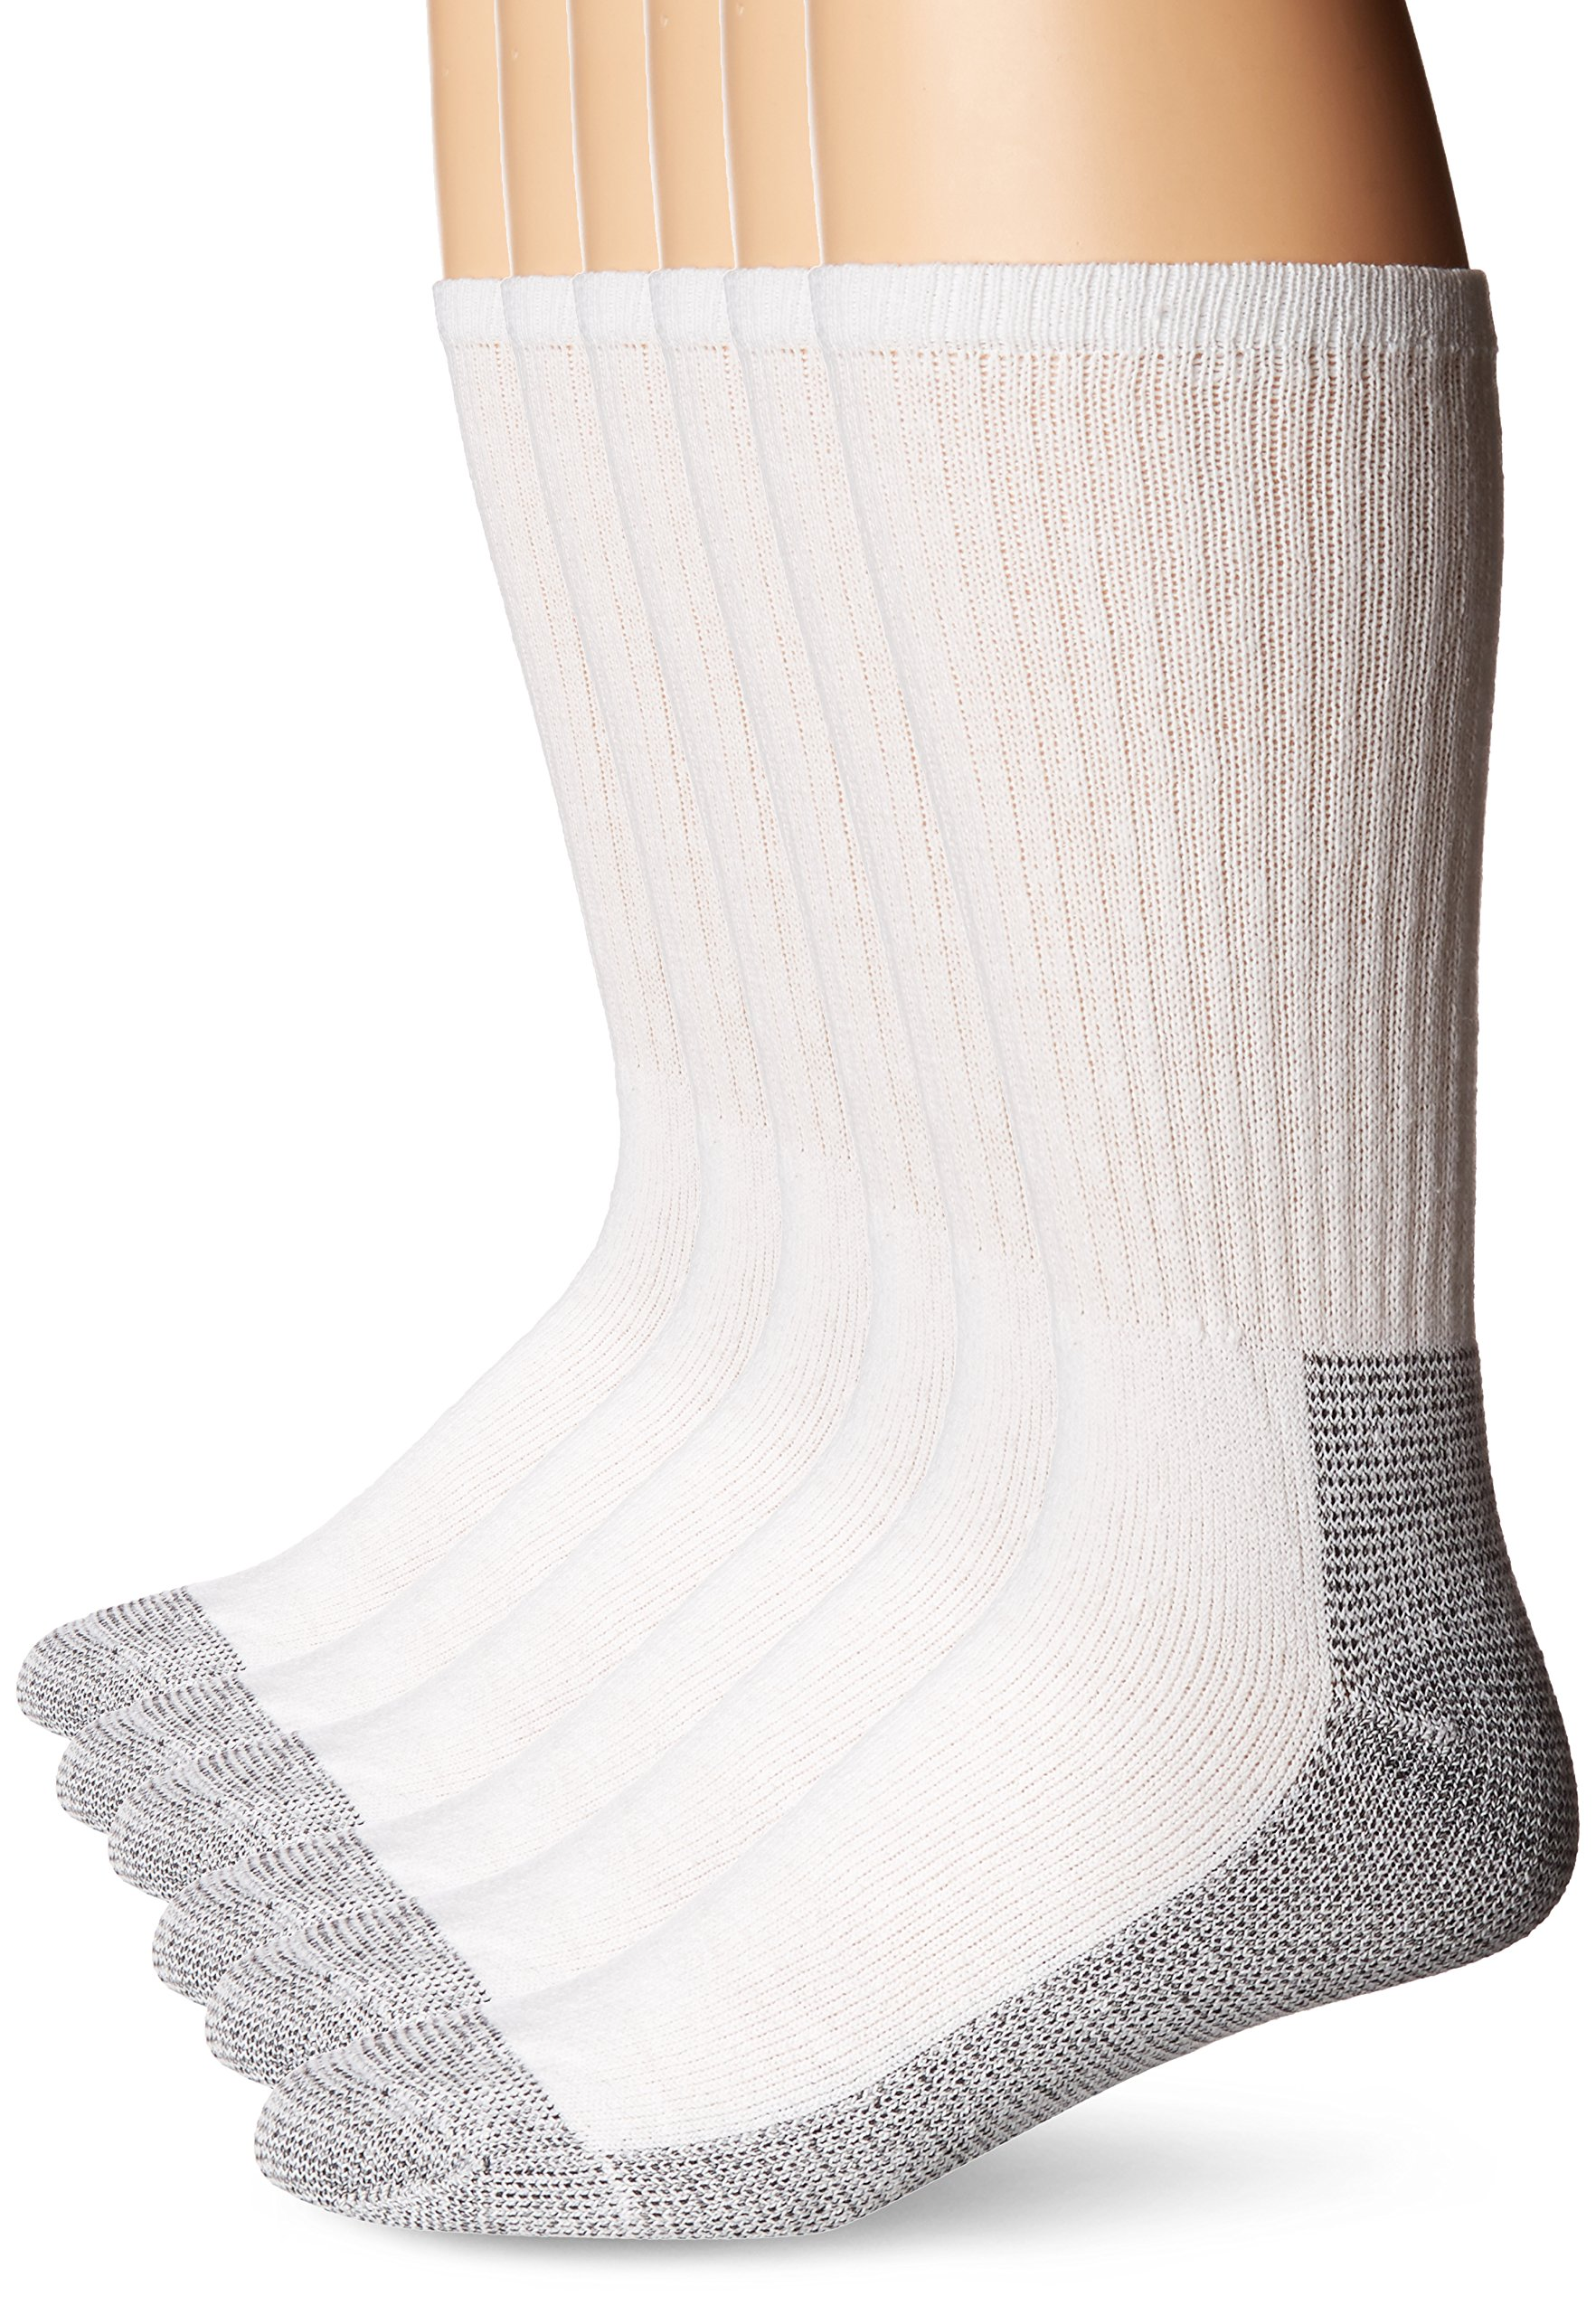 Fruit of the Loom Men's Big-Tall 6 Pair Big & Tall Full Cushion Work Gear Crew Sock Sockshosiery, white, Shoe size 12-16